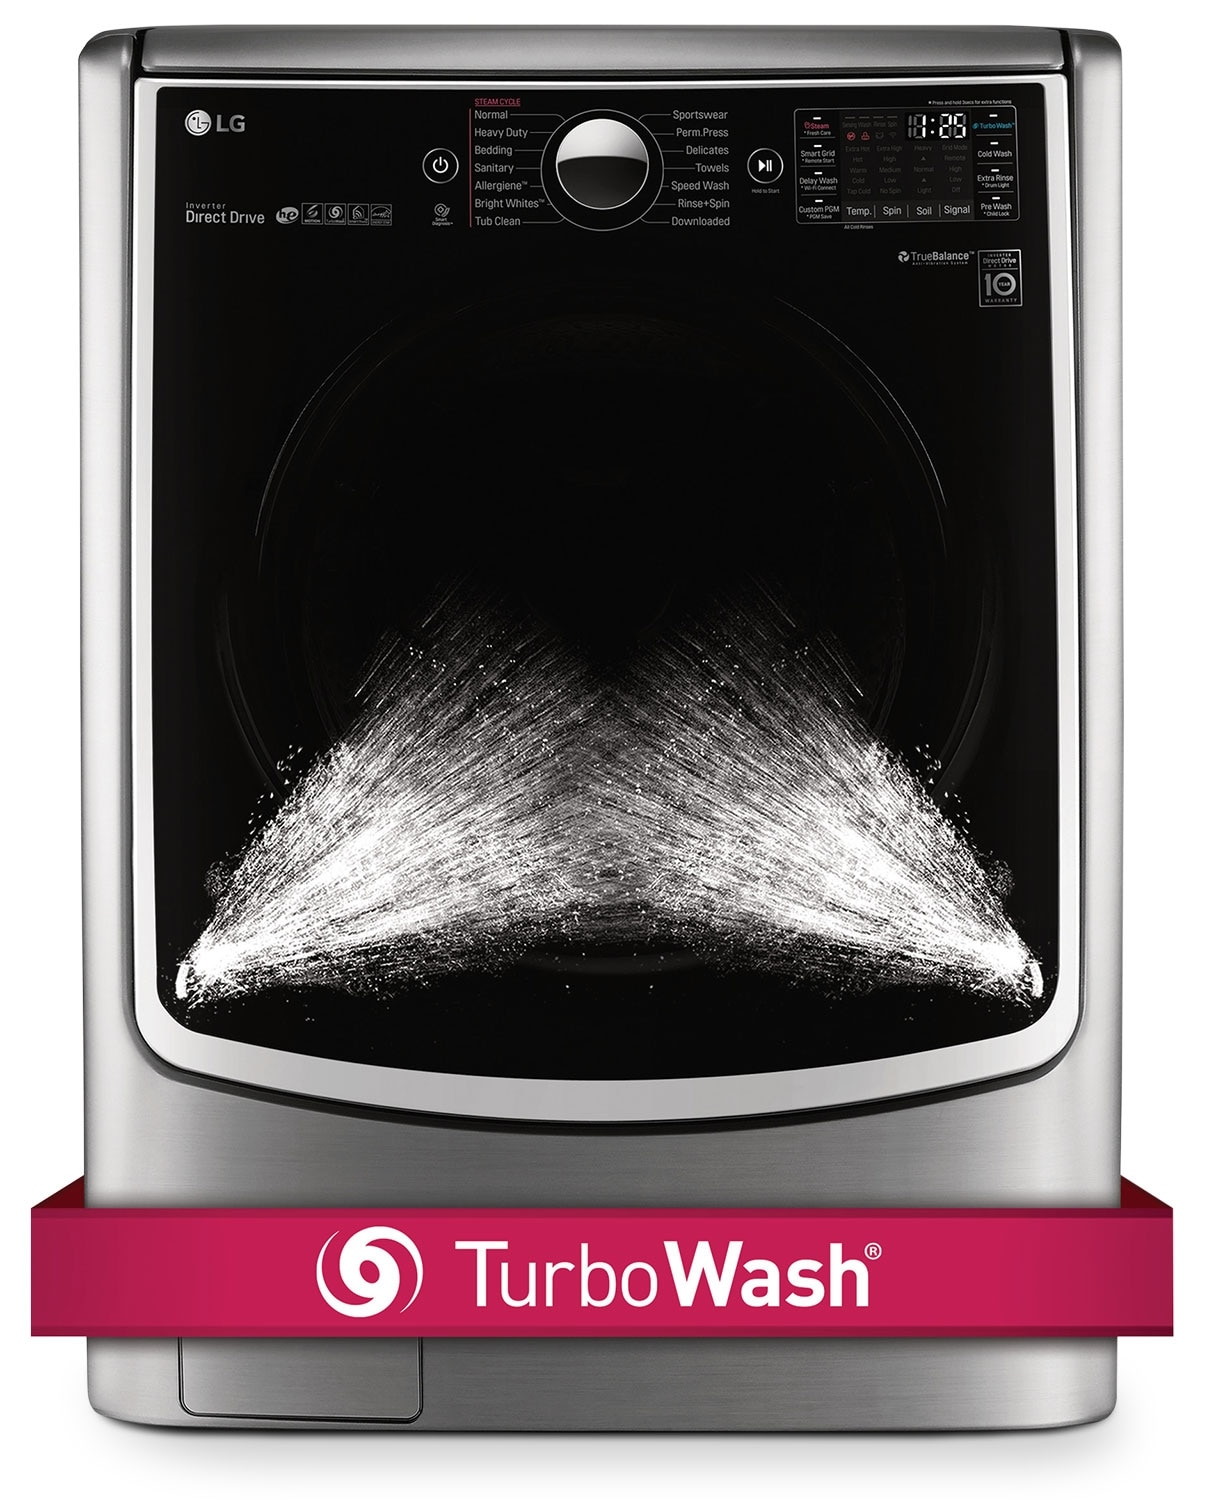 Washers and Dryers - LG Appliances Graphite Steel Front-Load Washer (5.2 Cu. Ft.) - WM5000HVA